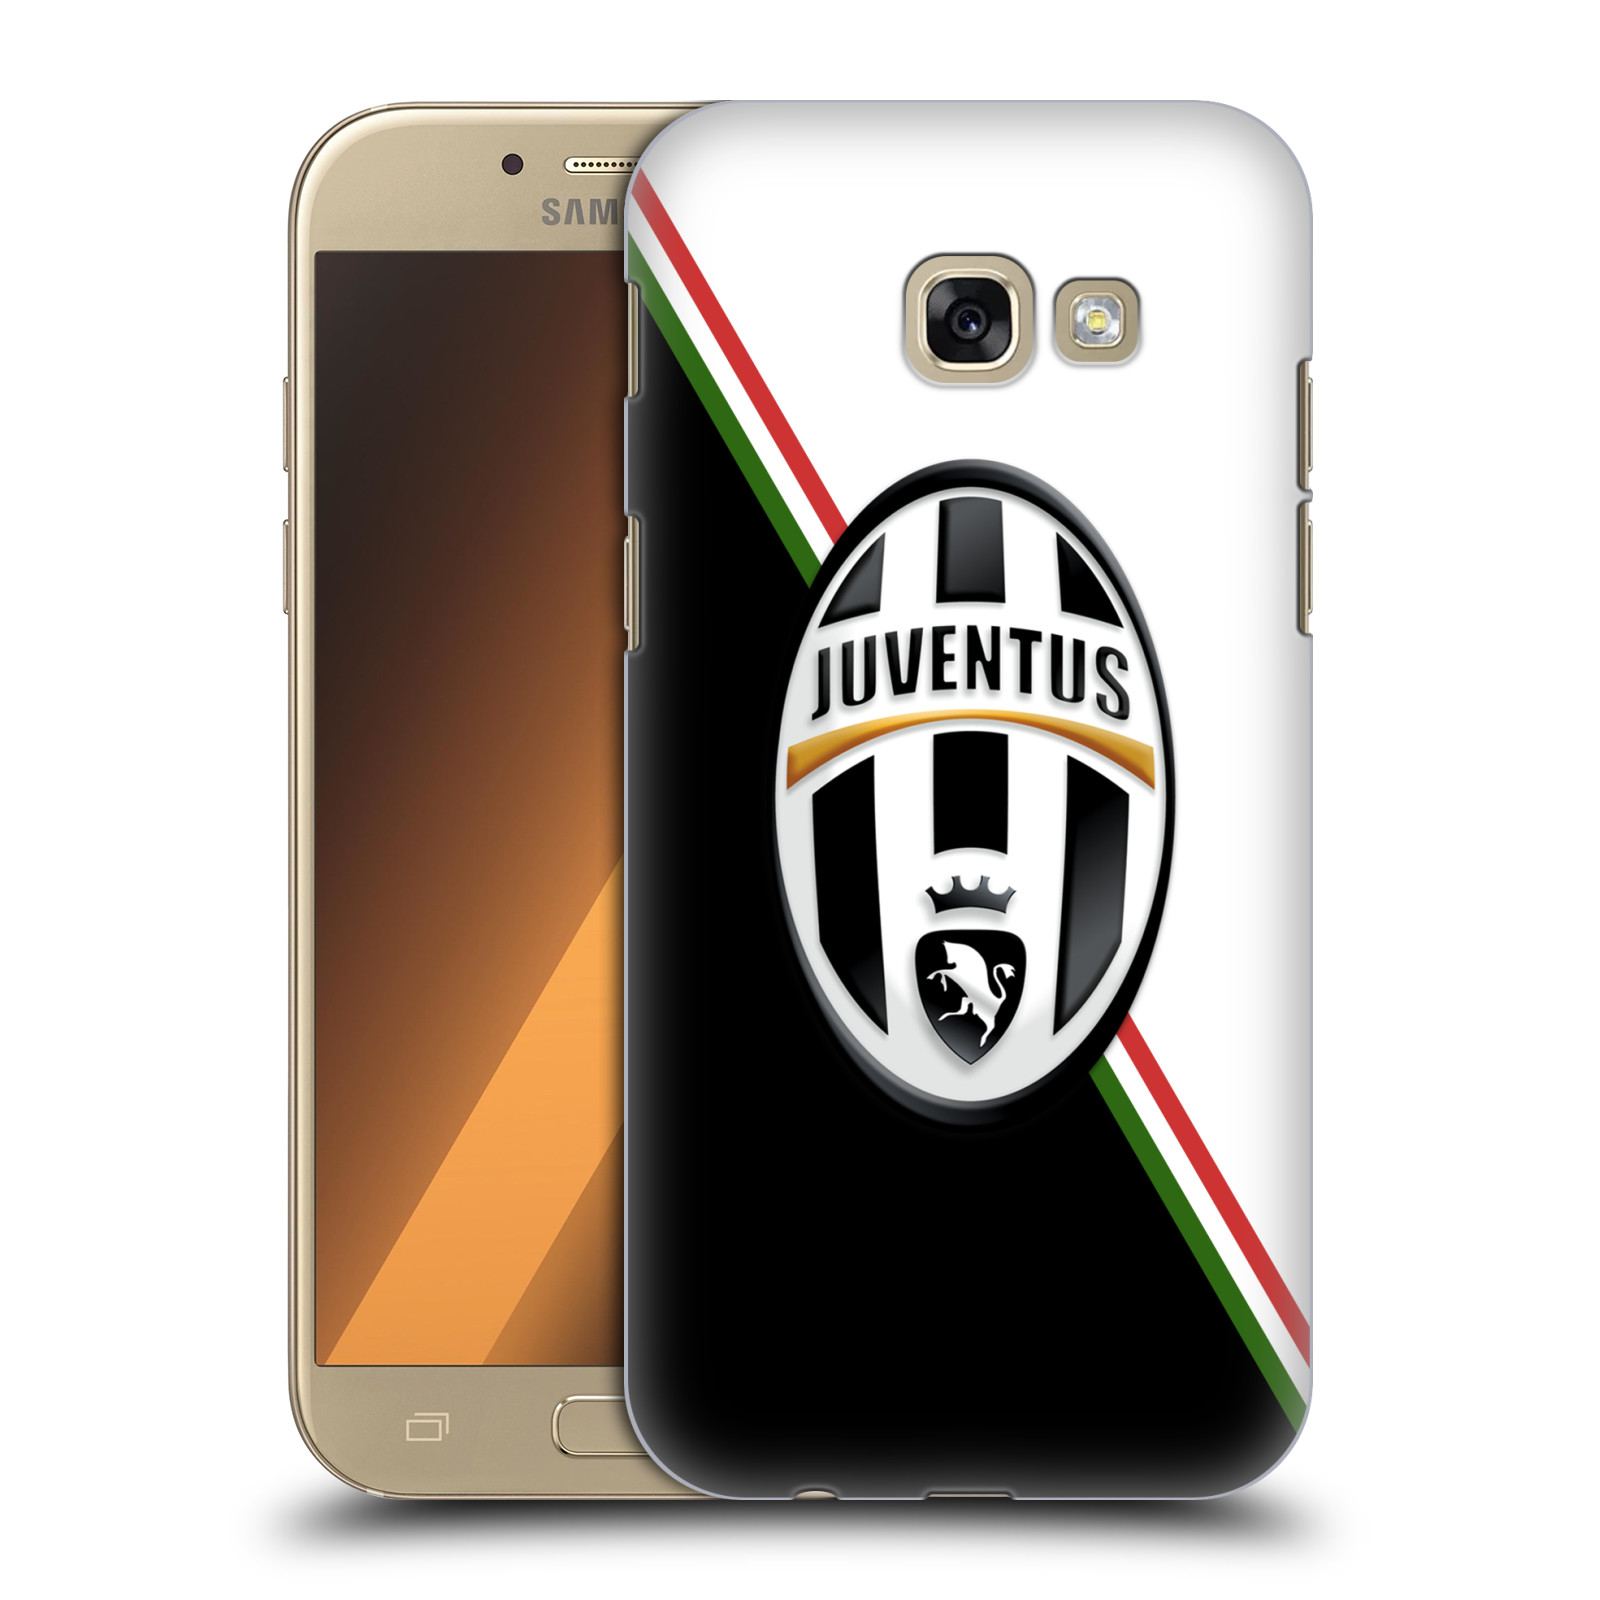 Plastové pouzdro na mobil Samsung Galaxy A5 (2017) HEAD CASE Juventus FC - Black and White